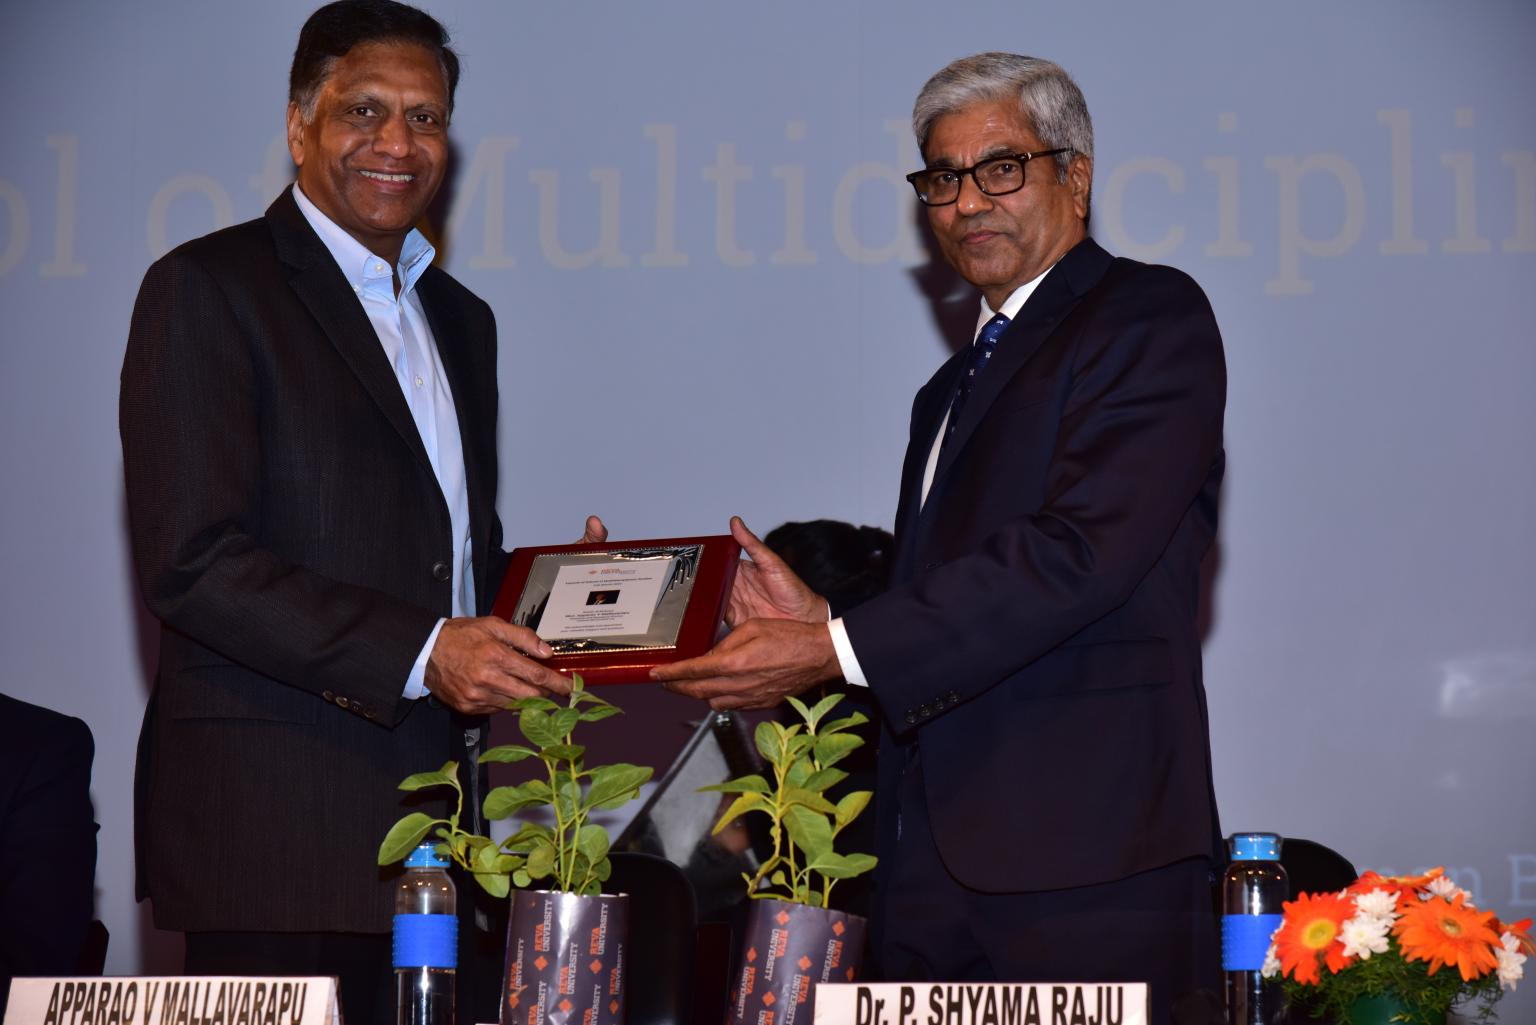 Centum Electronics Limited signed a MoU with REVA University